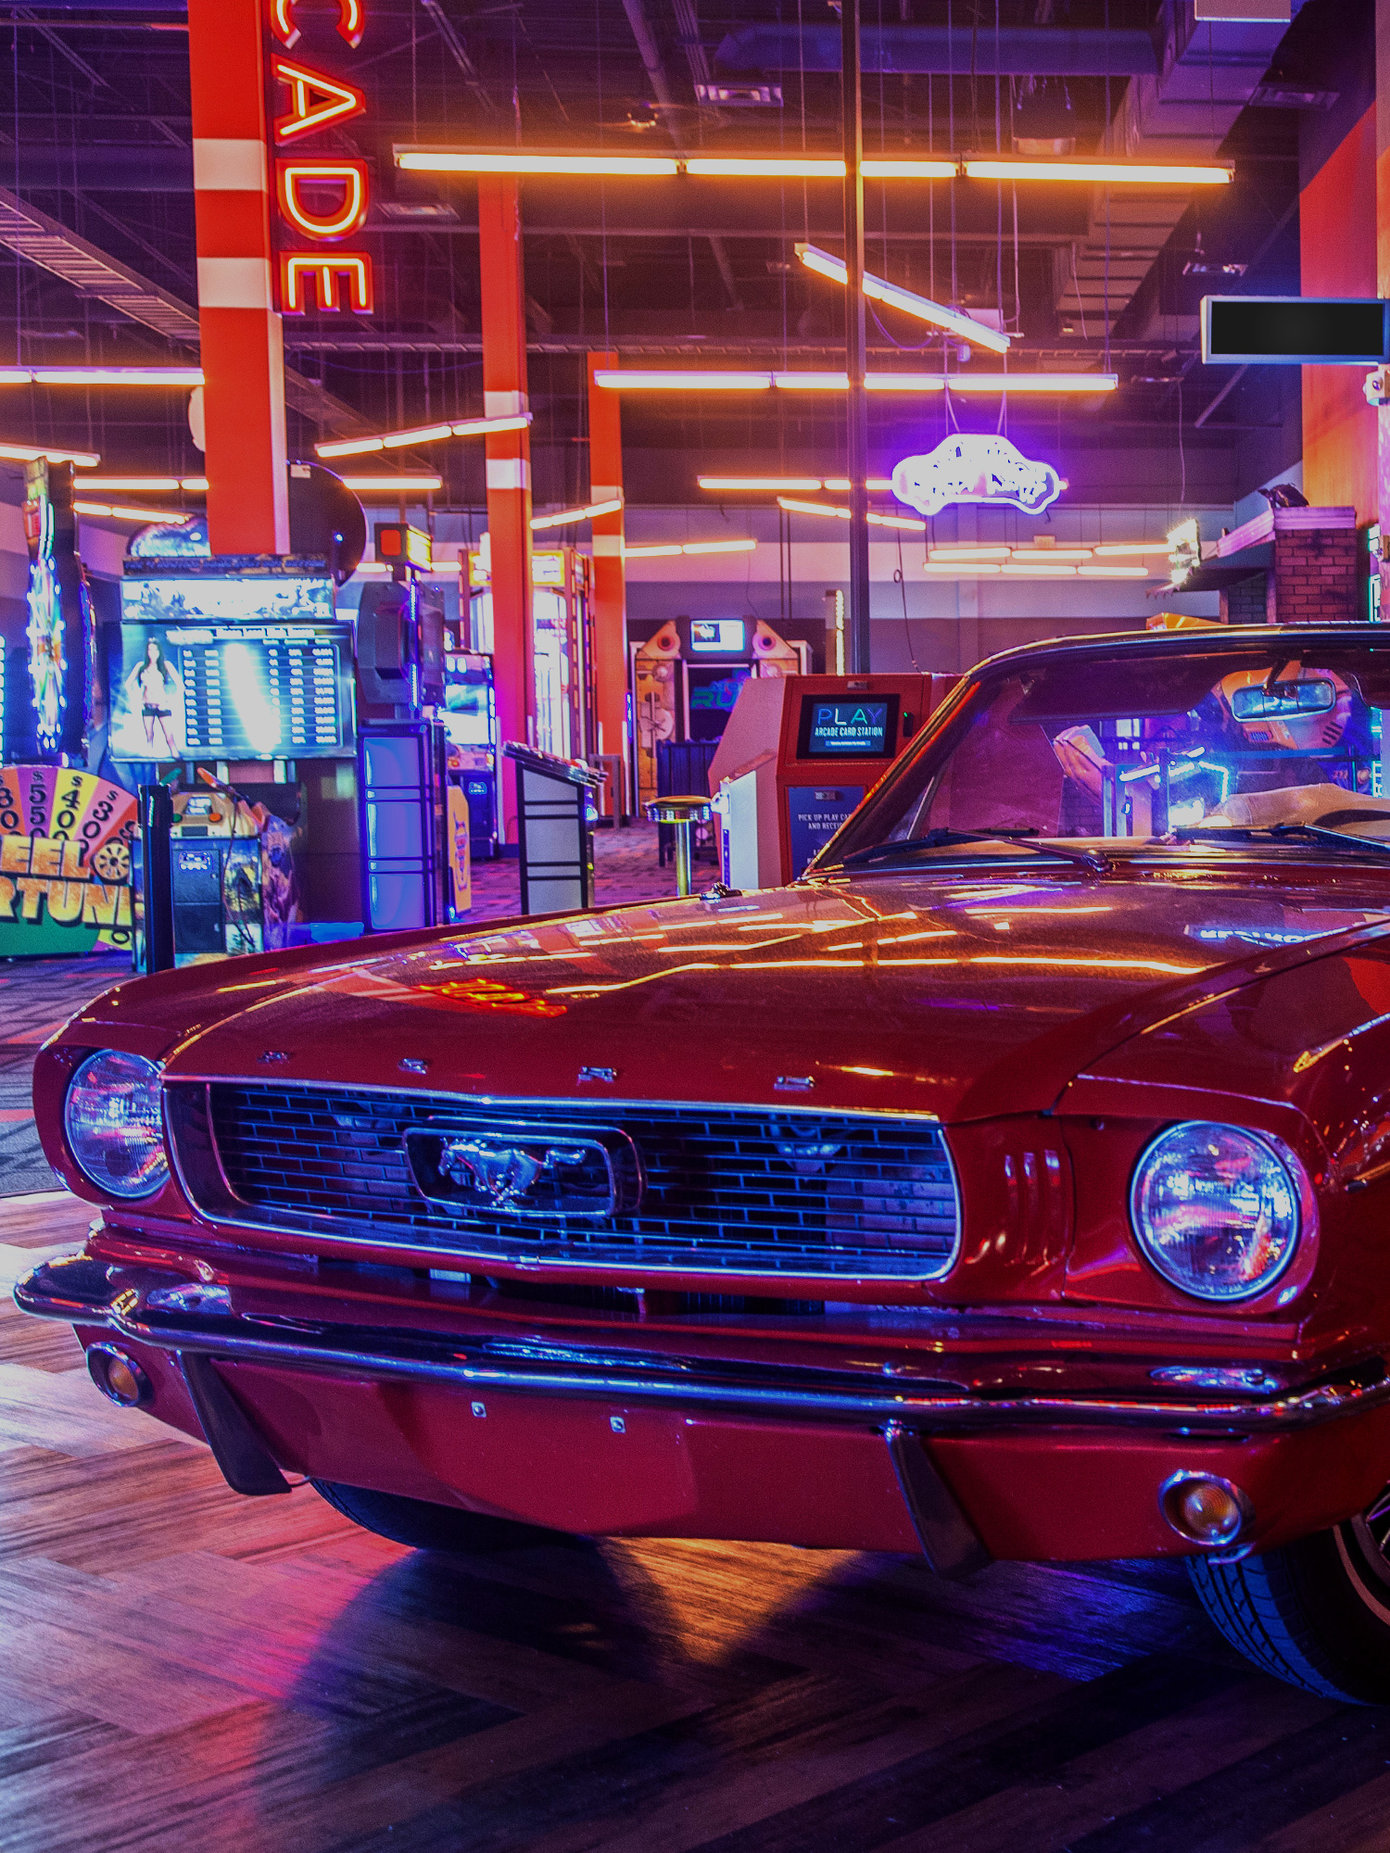 Retro red car with an arcade behind it